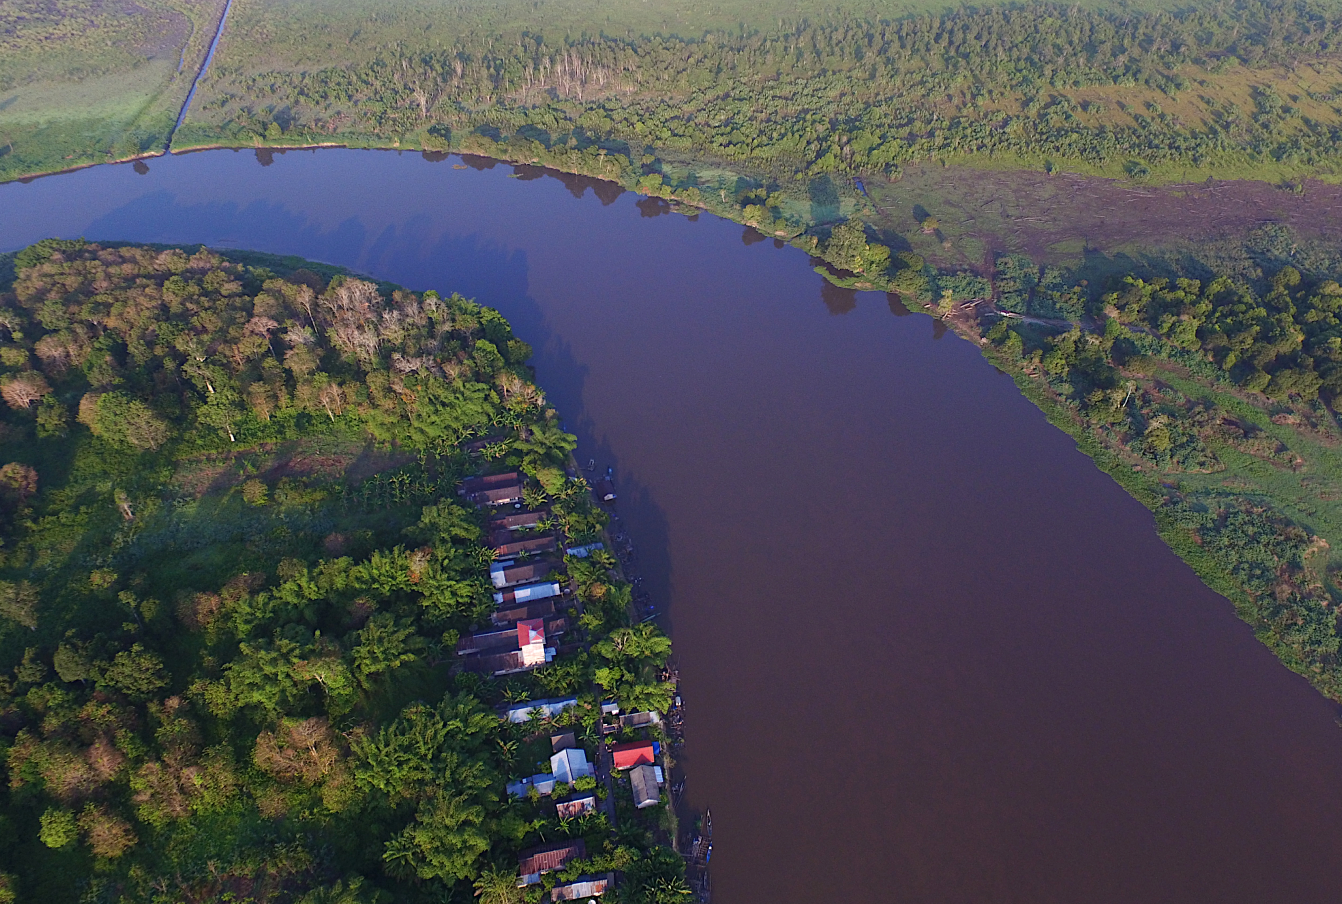 Aerial view of carbon offset project Rimba Raya village